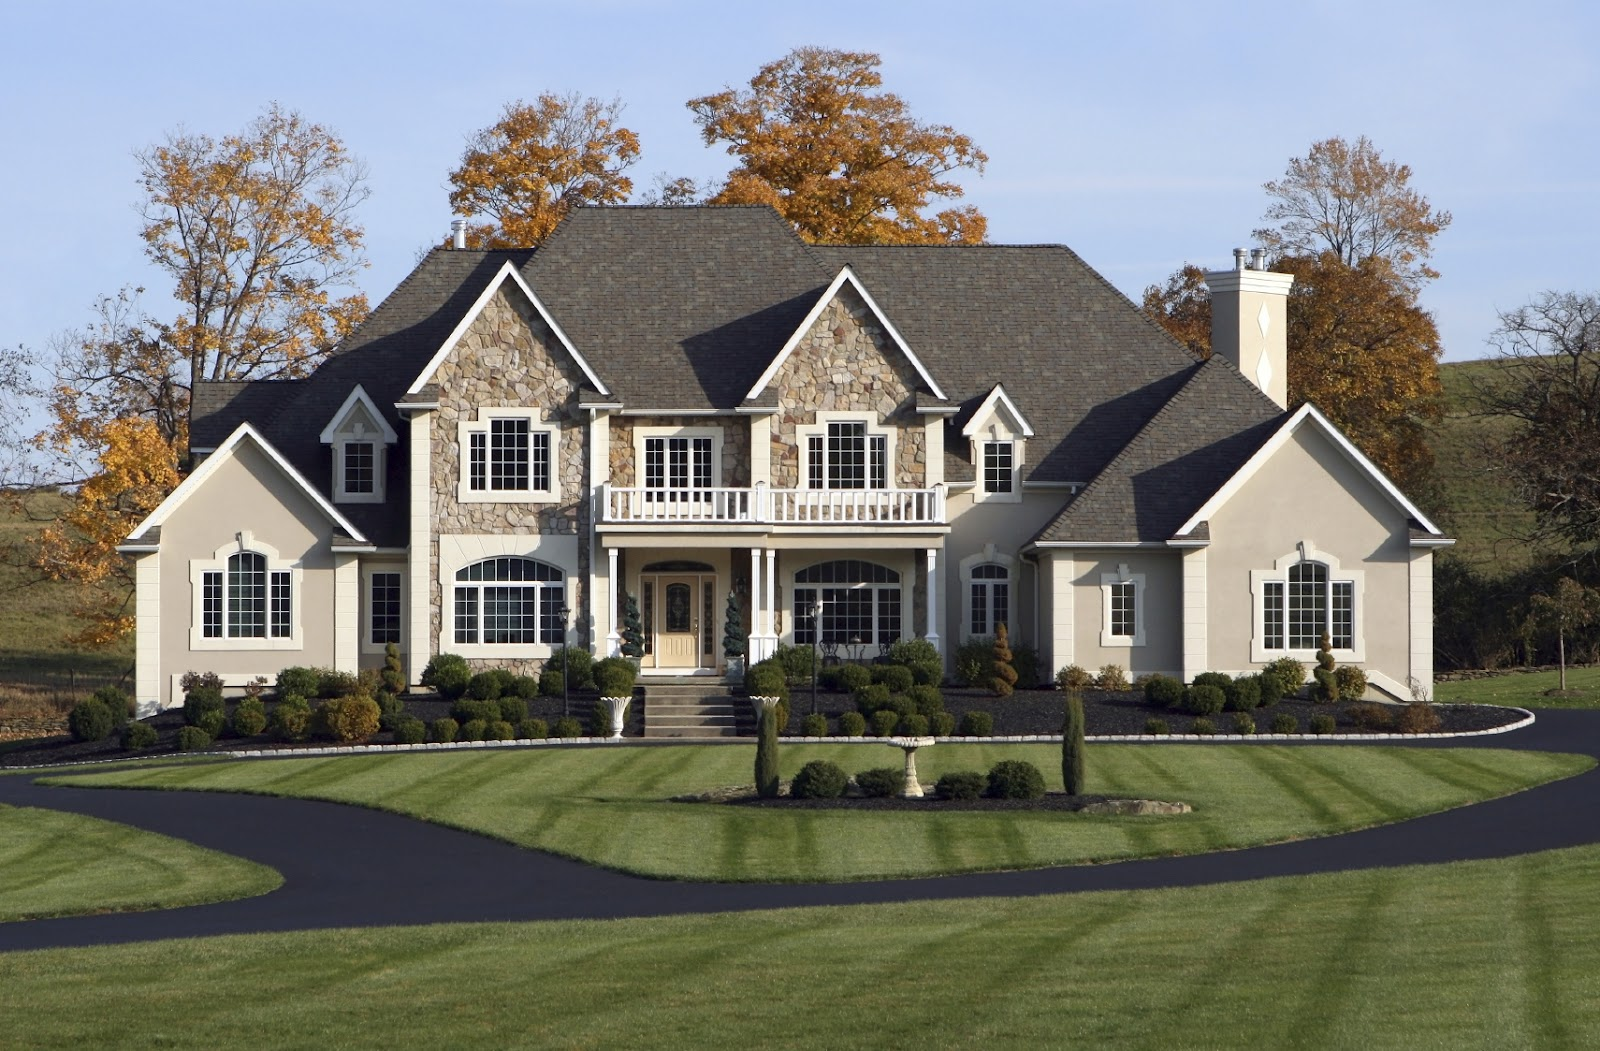 Call real estate specialists Don Shurts at 937 241 2124 or Cyndi Shurts at  937 604 5194 for experienced help buying or selling your home  Both Dayton  agents. Homes For Sale in Washington Township OH   Welcome Home  Dayton